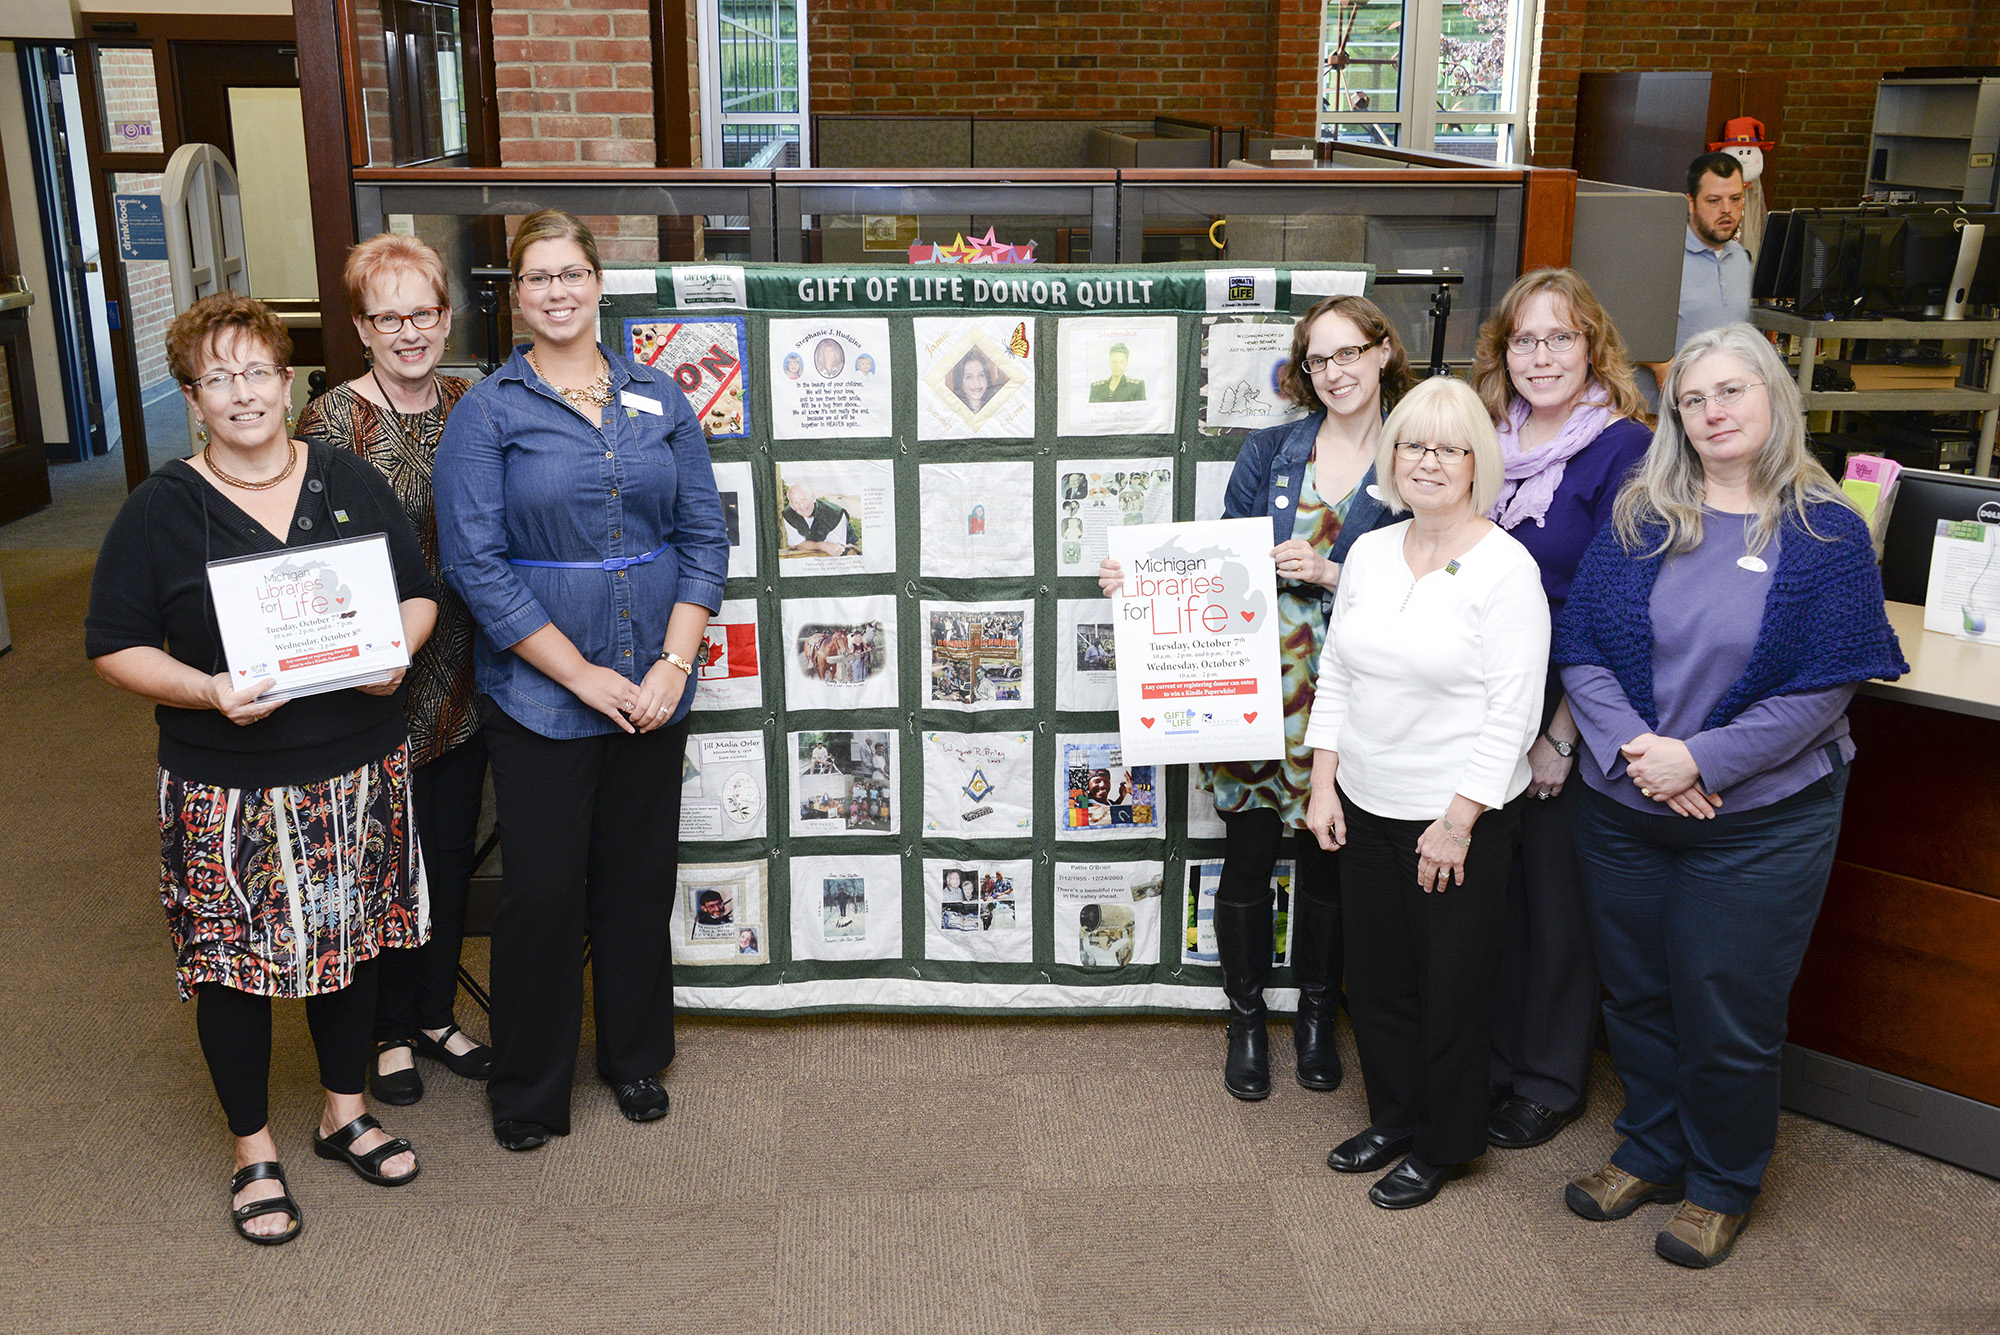 Library staff pose with an organ donor quilt in the library following an organ donation information event at KCC.